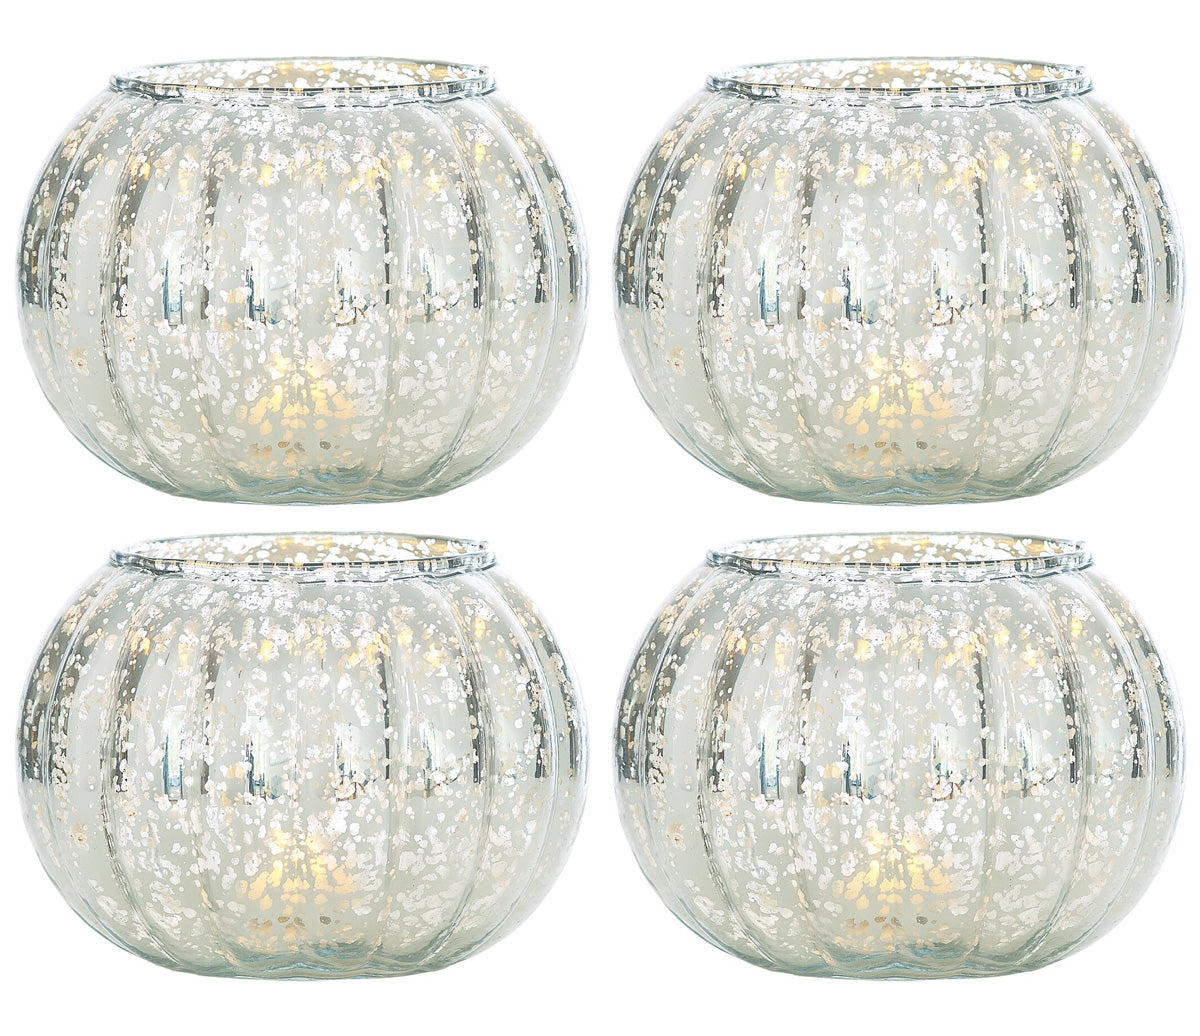 4 Pack | Small Vintage Mercury Glass Candle Holder (3.5-Inch, Autumn Design, Silver) - For Home Decor, Party Decorations, and Wedding Centerpieces